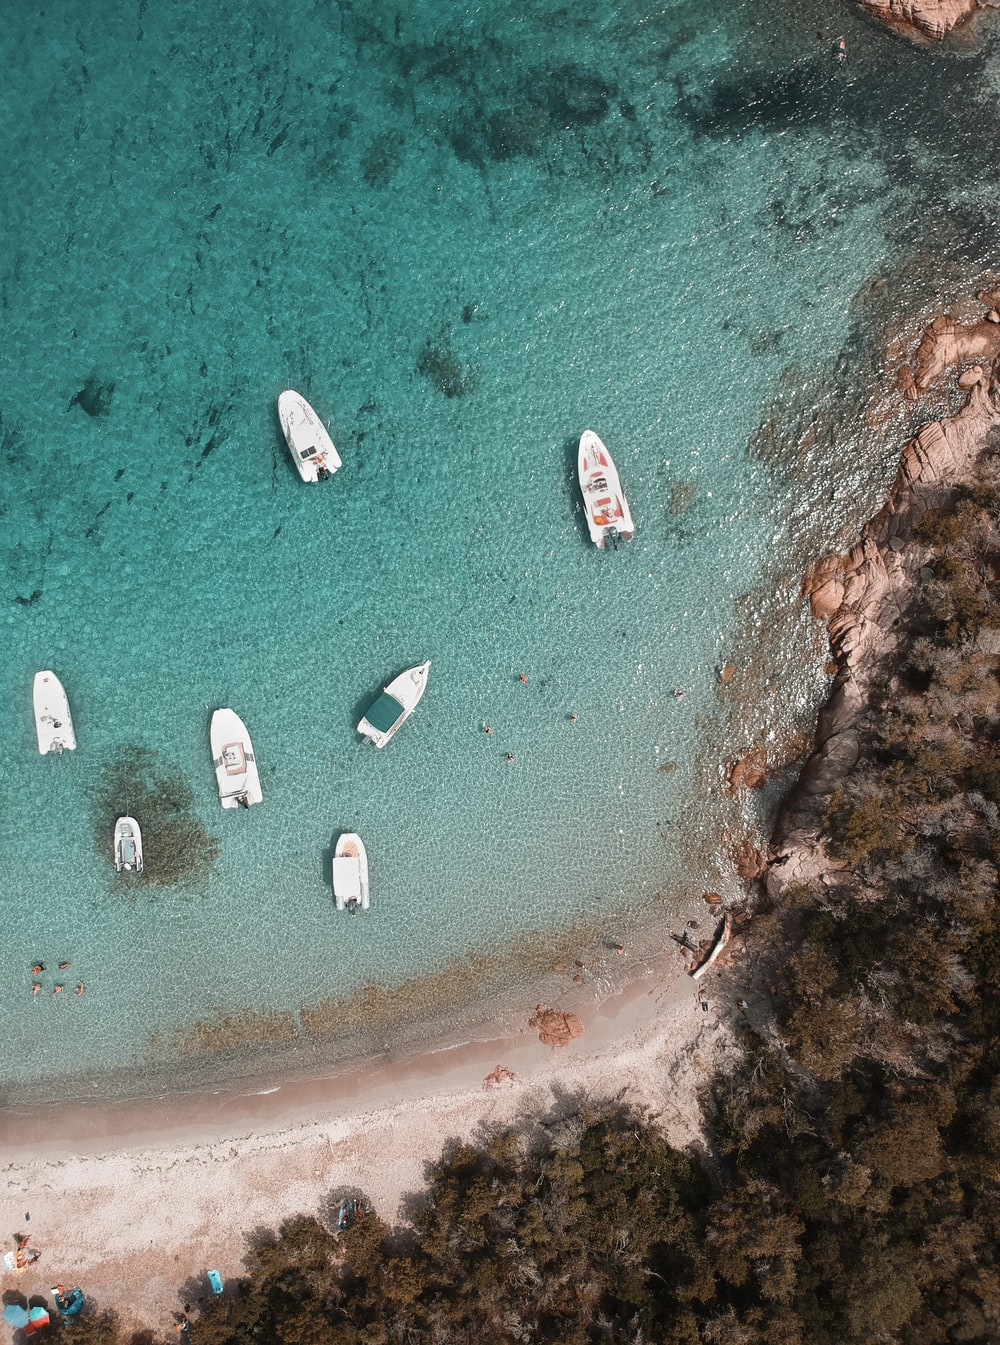 aerial view of boats on sea during daytime